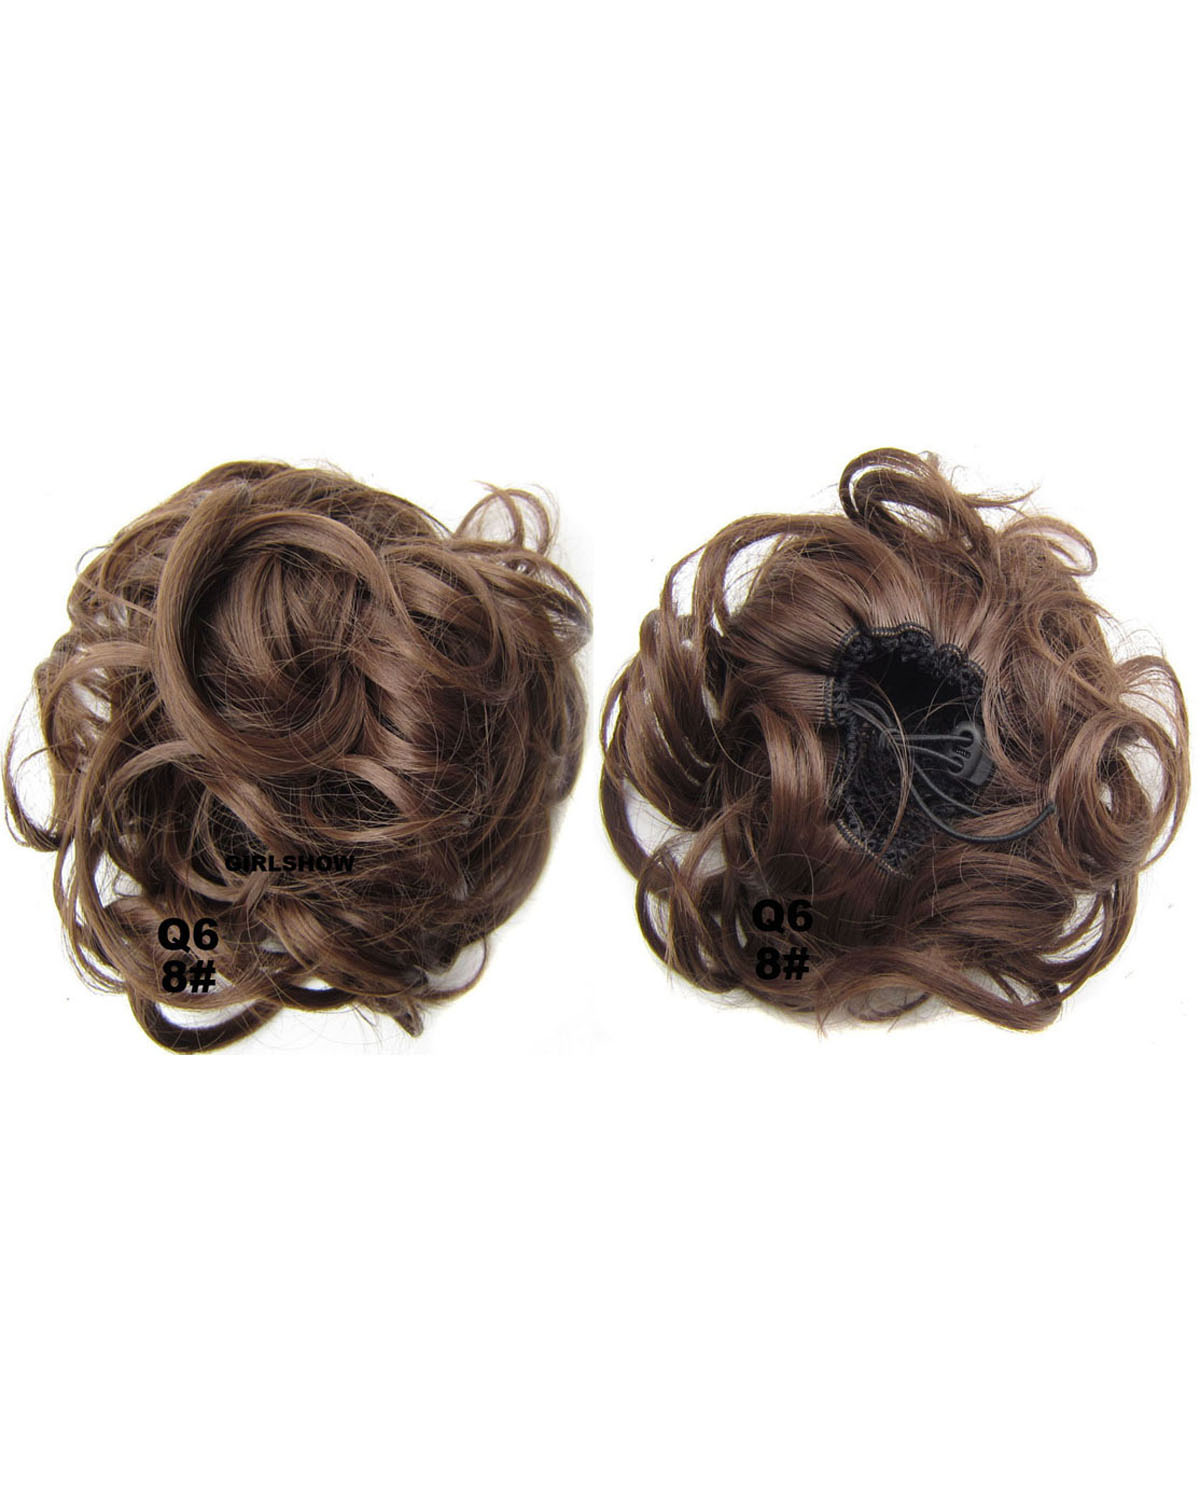 Ladies Newly and High Quality Curly and Short Hair Buns Drawstring Synthetic Hair Extension Bride Scrunchies  8#